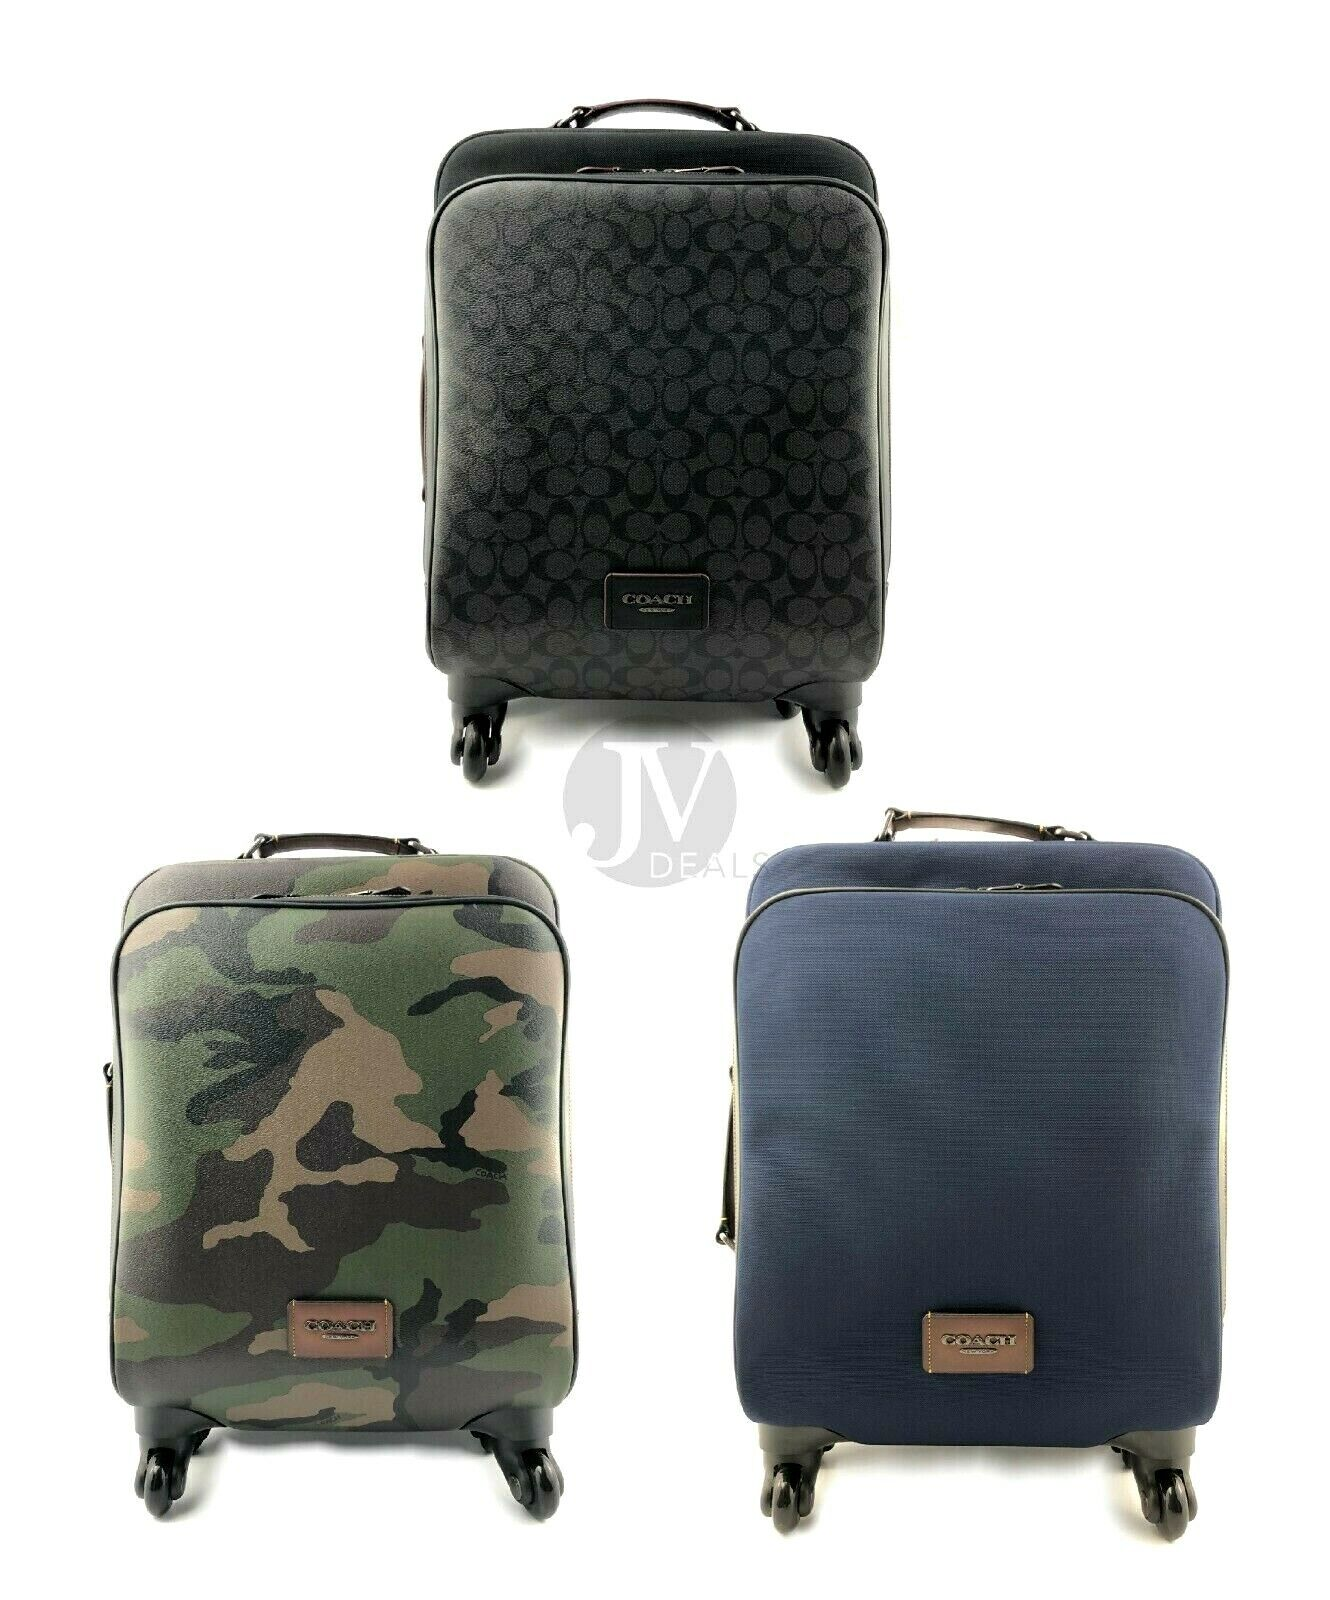 coach-wheel-along-trolley-rolling-suitcase-carry-on-bag